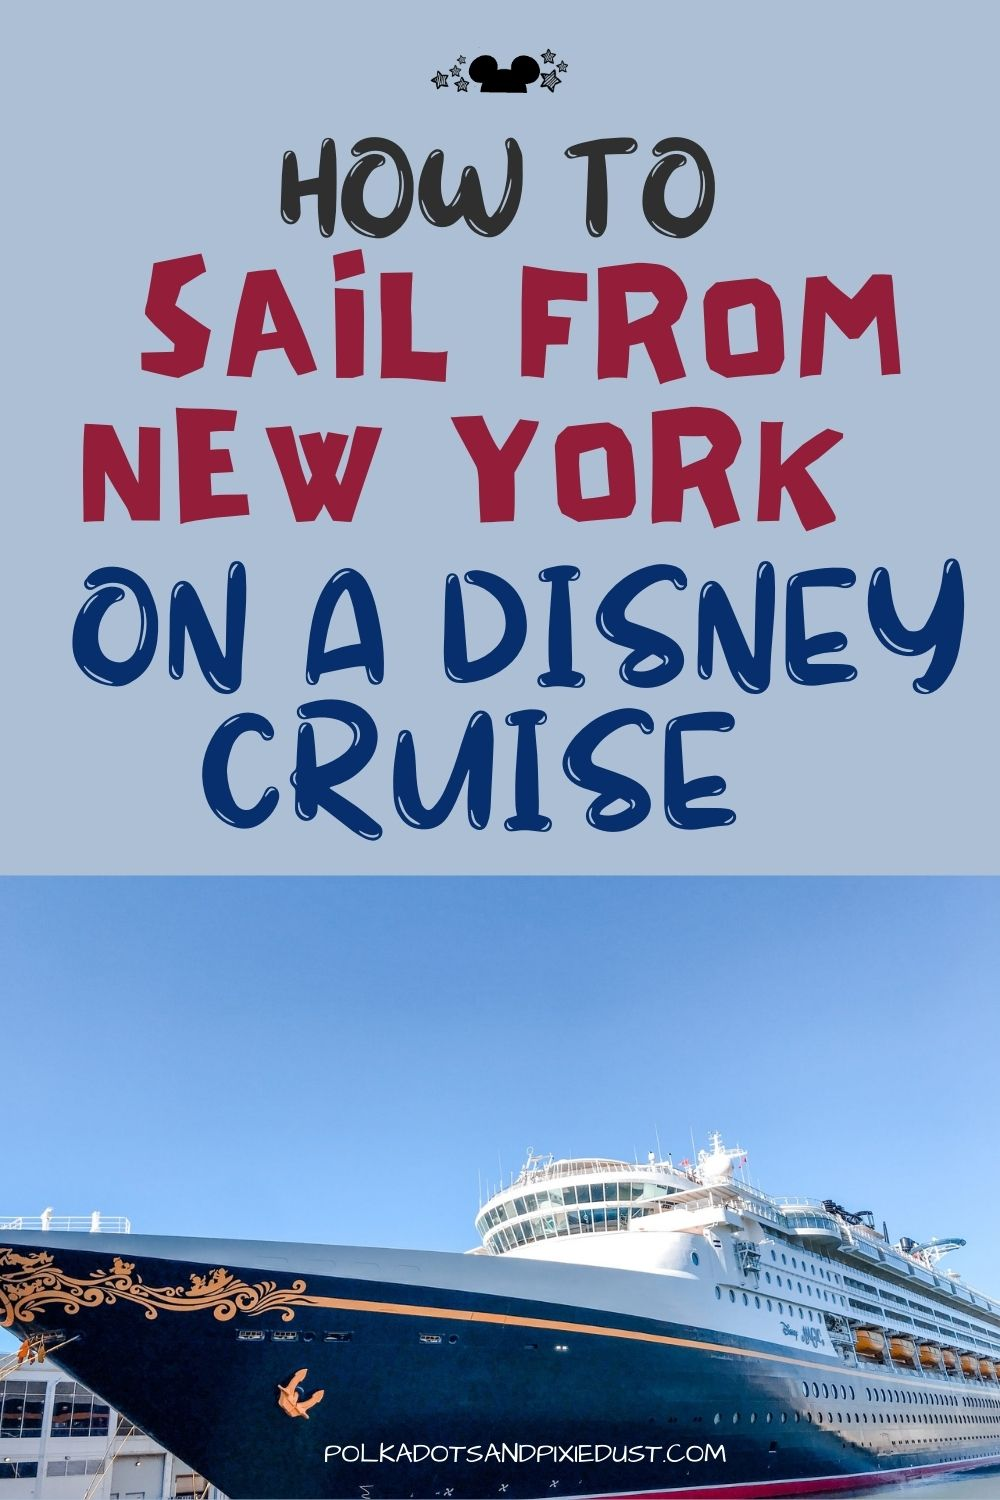 Disney Cruise Line Sailing from New York City on a Disney Cruise! All the details!